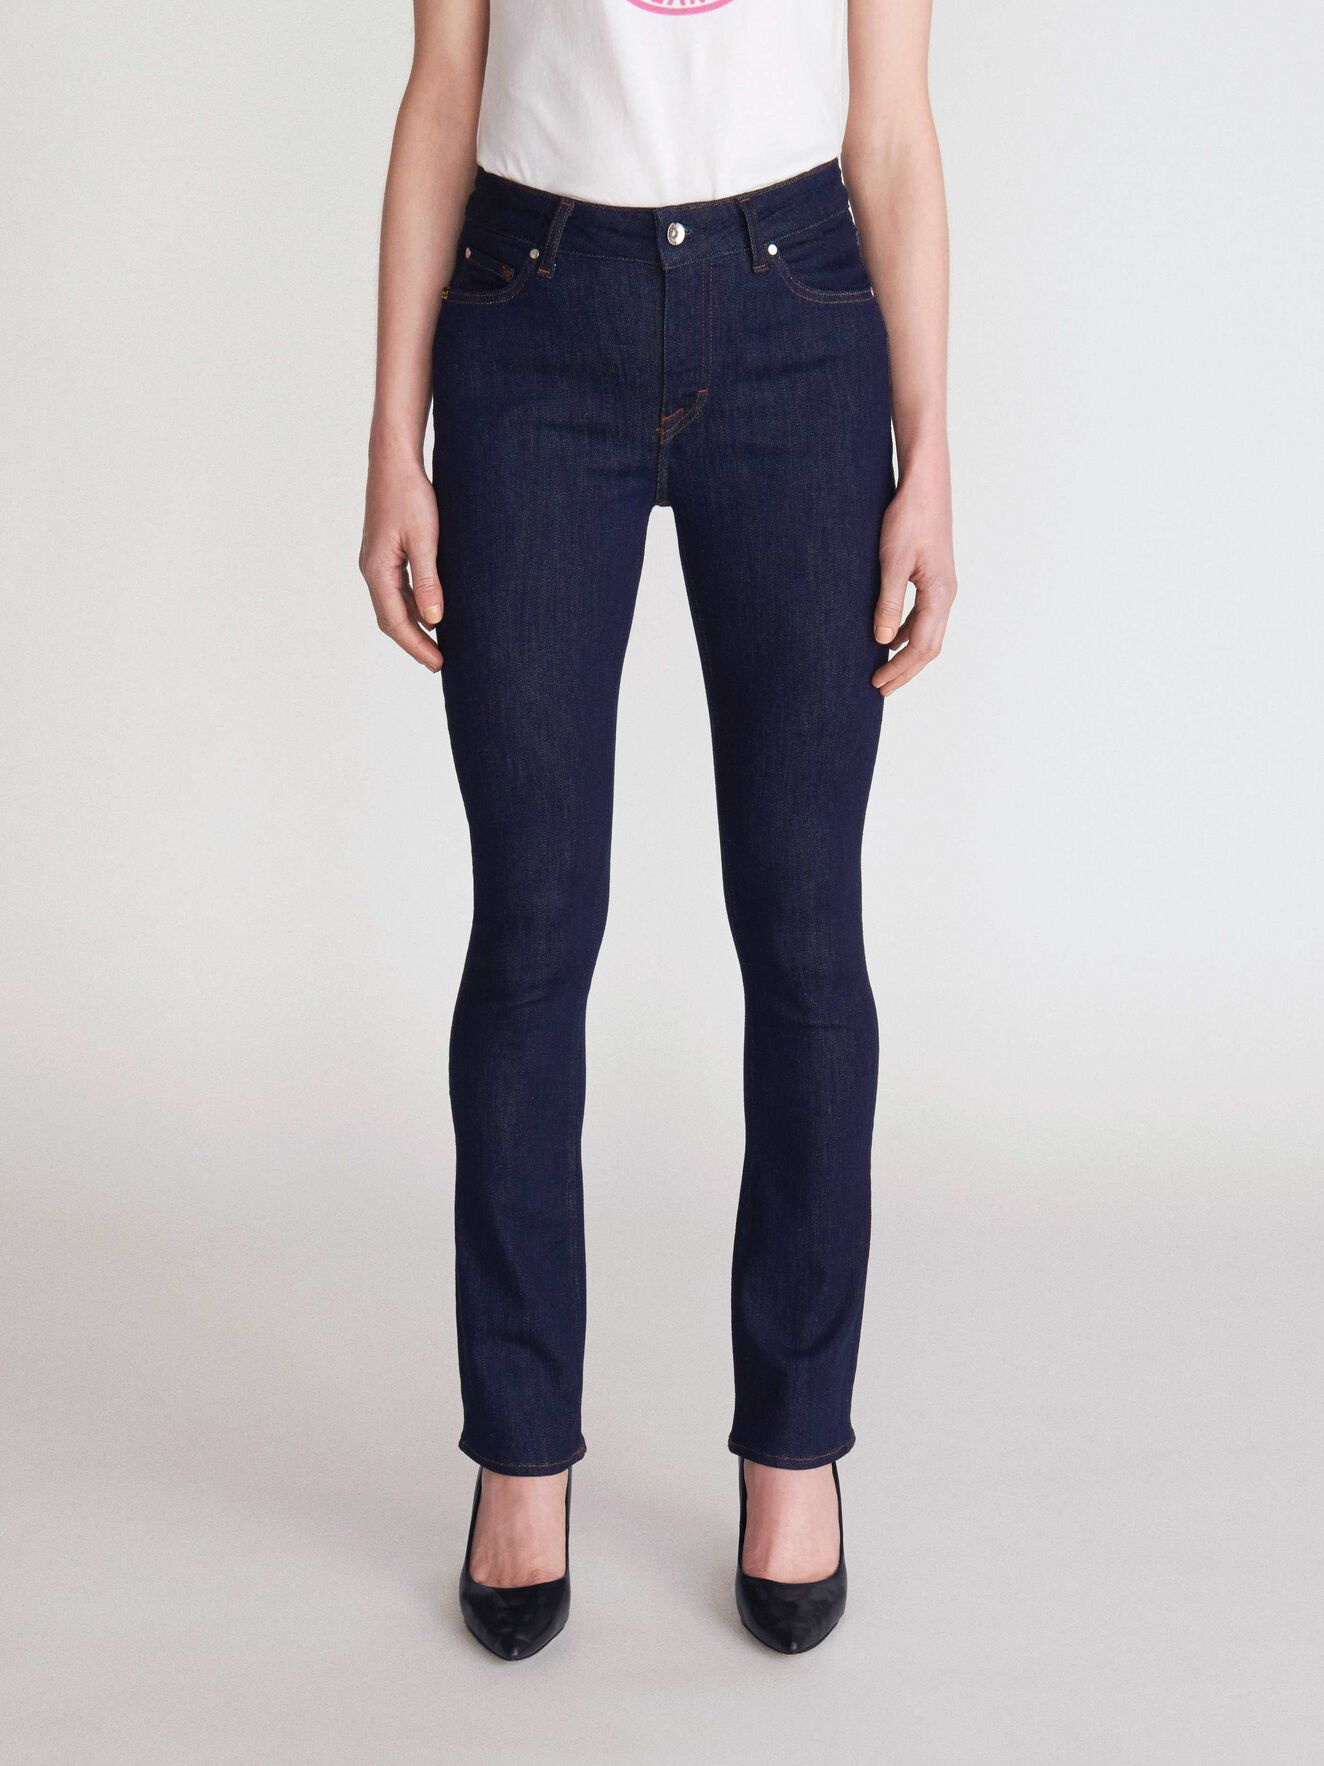 Lora Jeans in Midnight blue from Tiger of Sweden